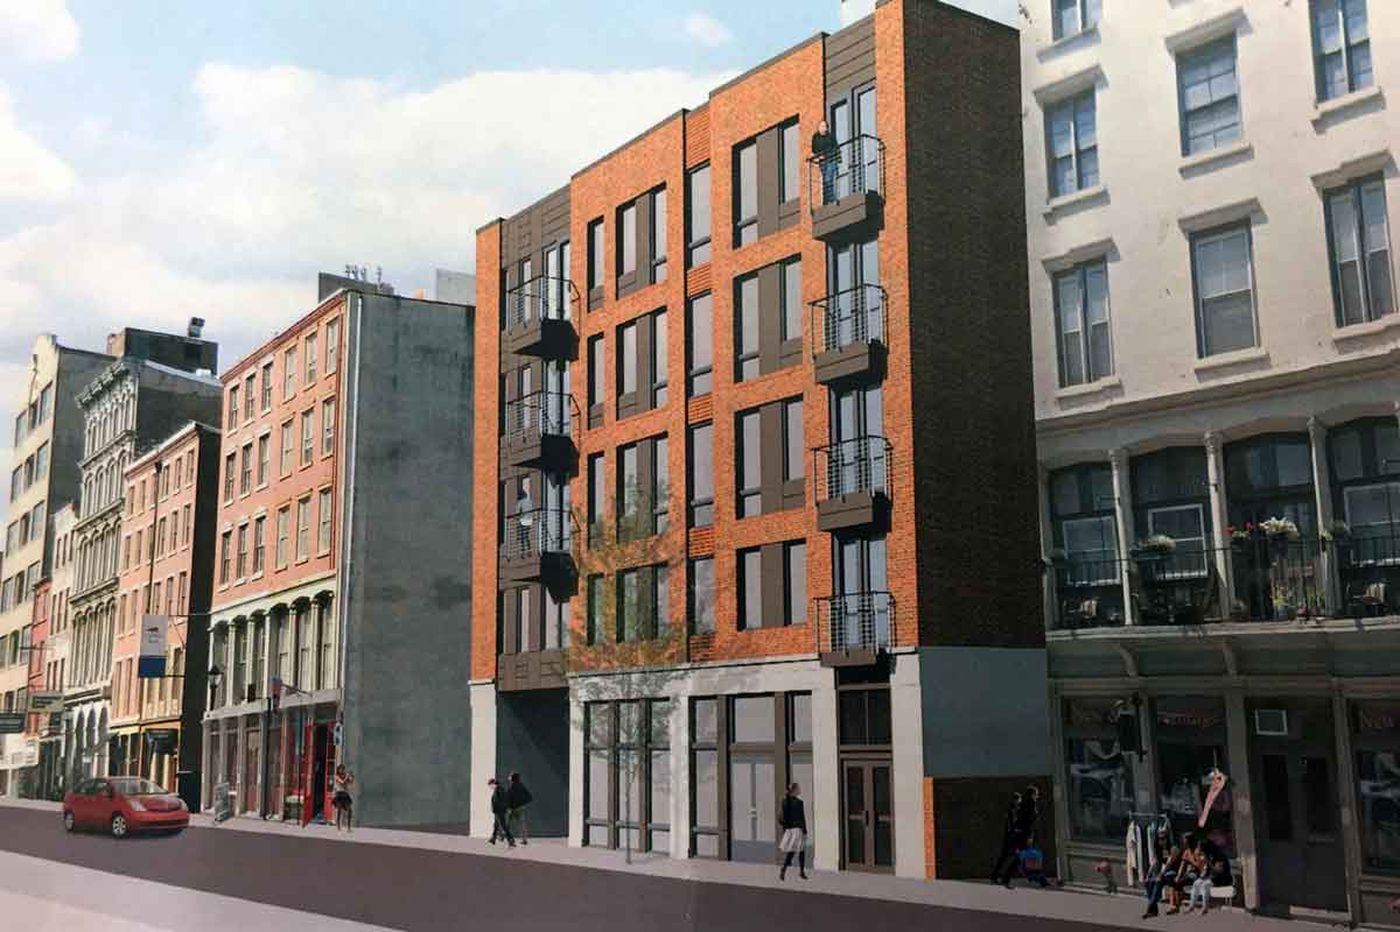 Residences to rise on parking lot in historic Old City